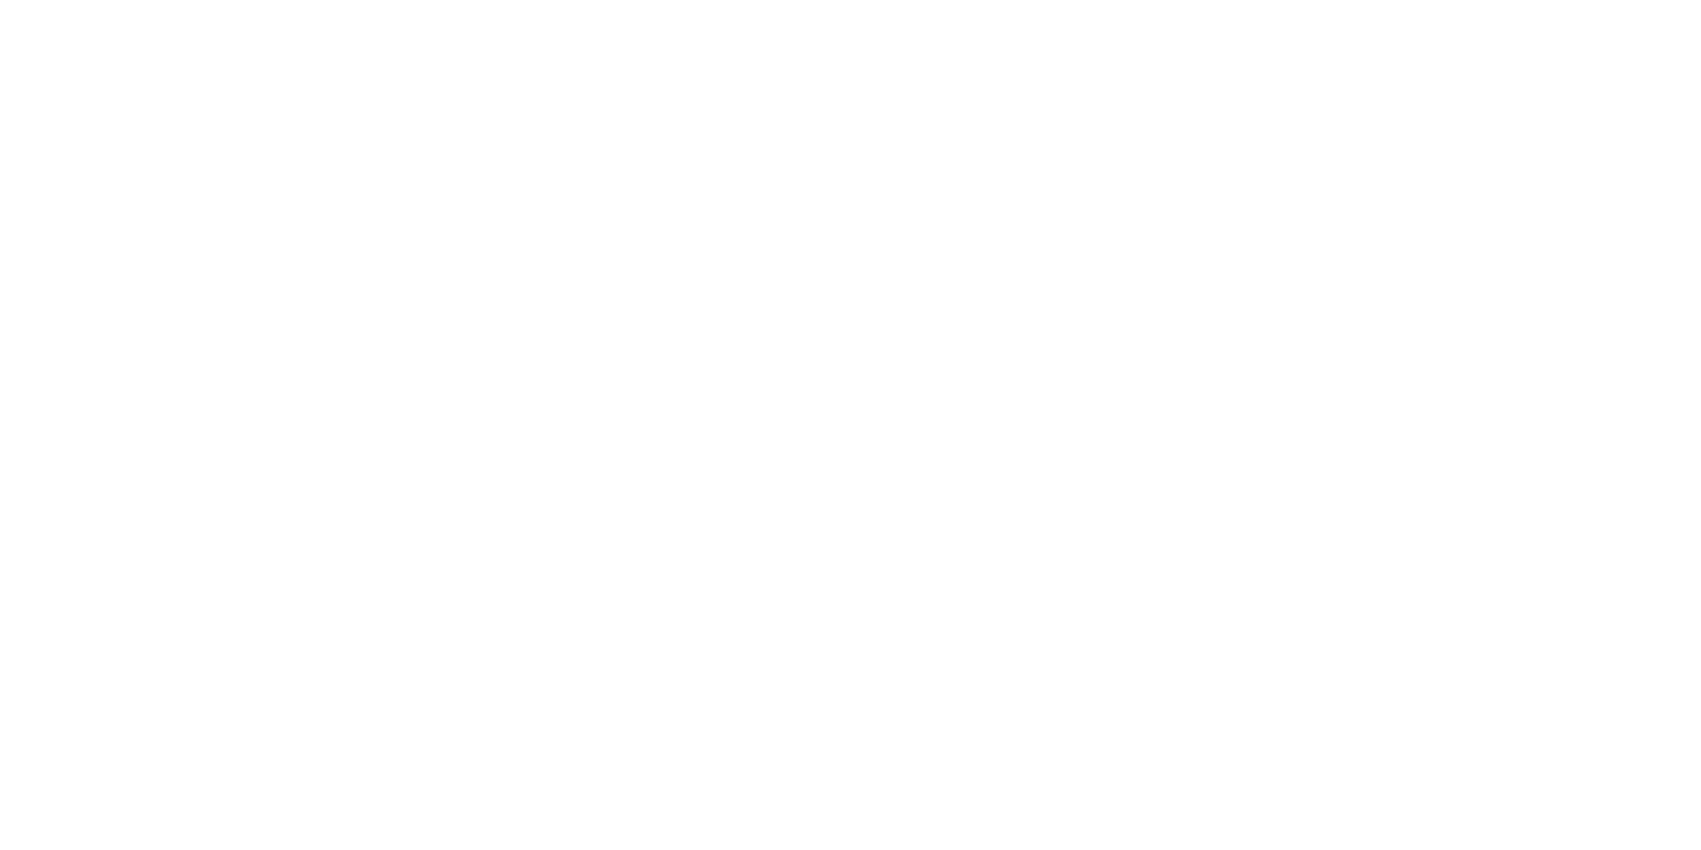 logo steelco